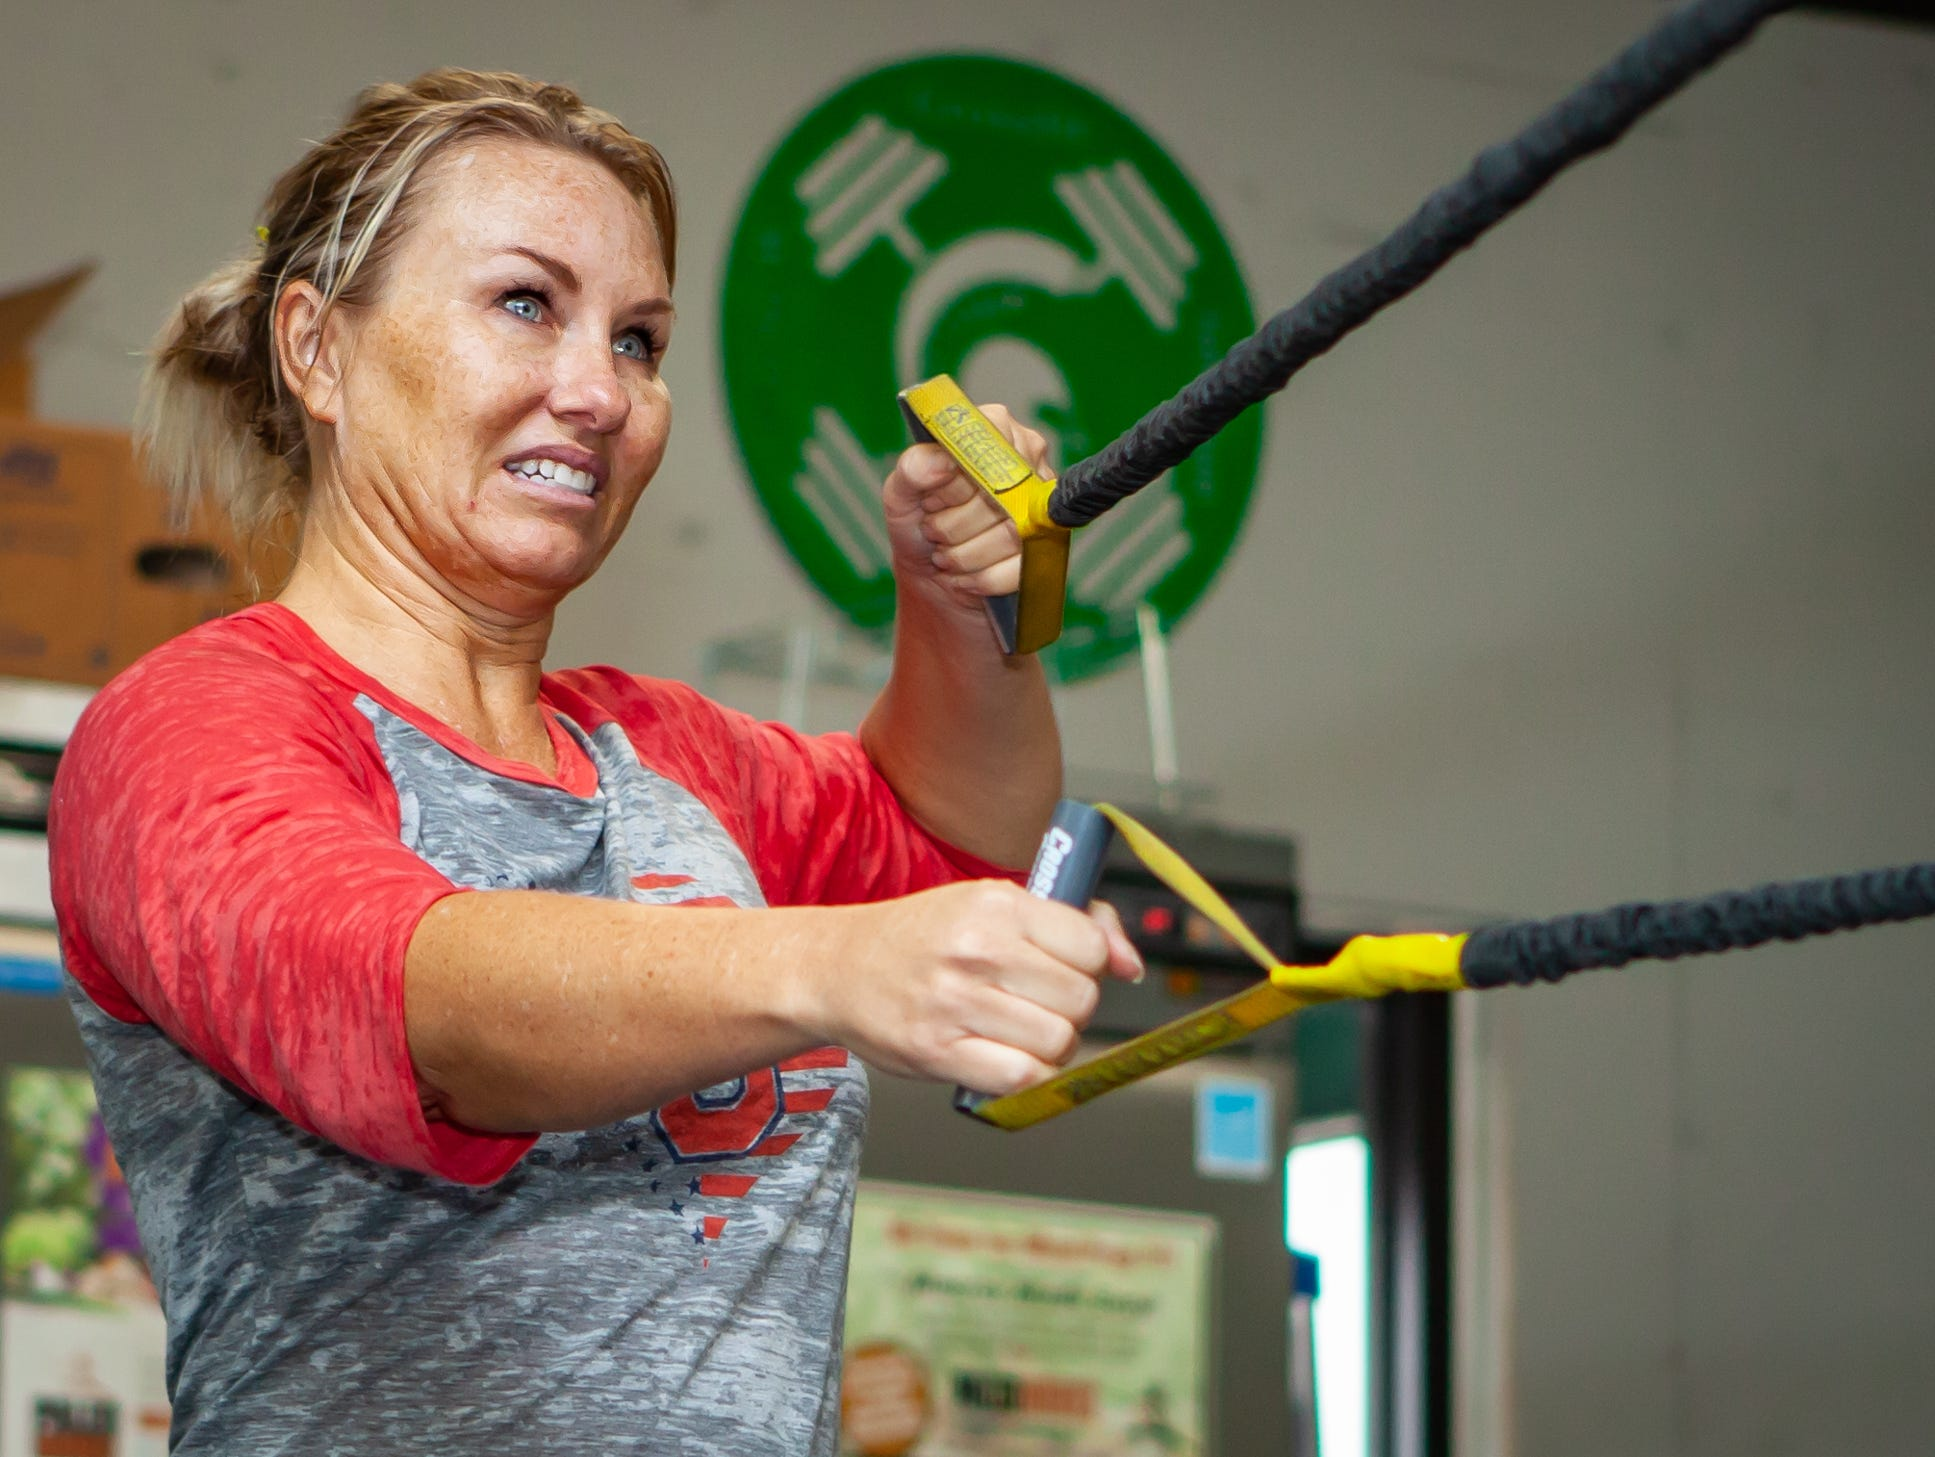 Nikki Baker works out at the CrossFit Barbell Batallion in downtown Murfreesboro. She is one of the Masters athletes (between the age of 40 and 50)